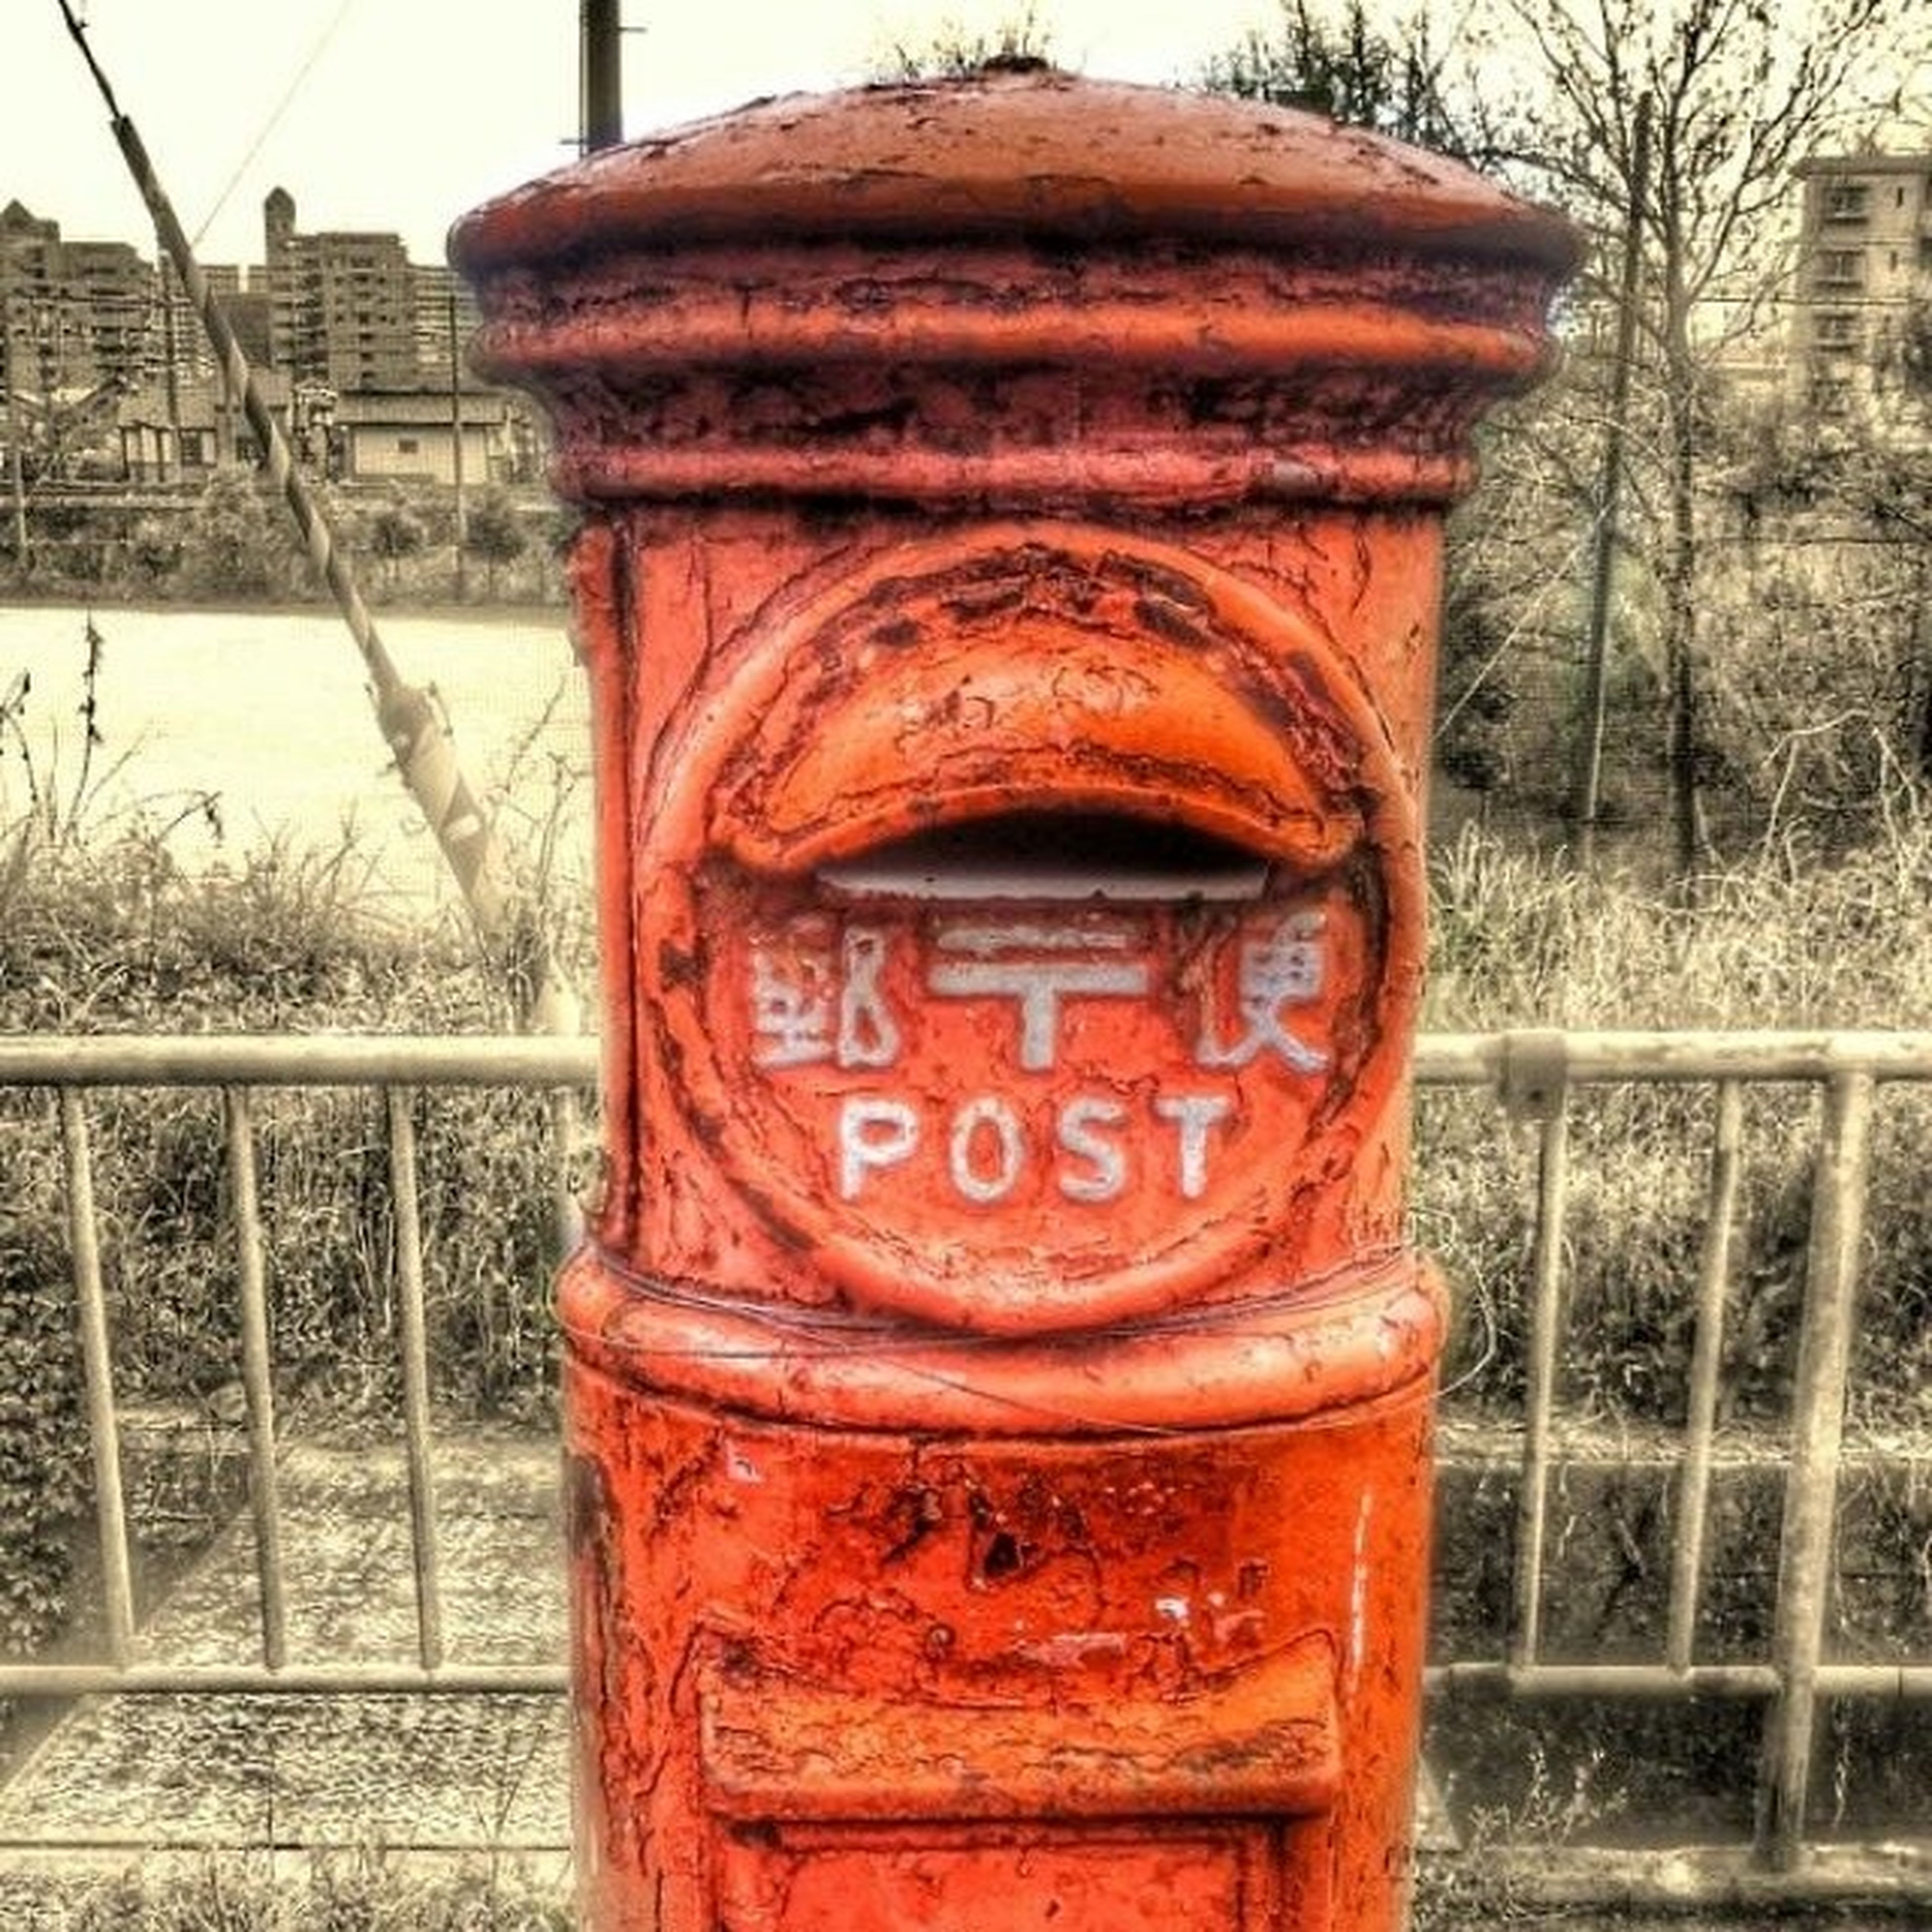 building exterior, architecture, built structure, metal, close-up, red, old, tree, day, rusty, text, outdoors, weathered, no people, focus on foreground, water, western script, metallic, safety, protection